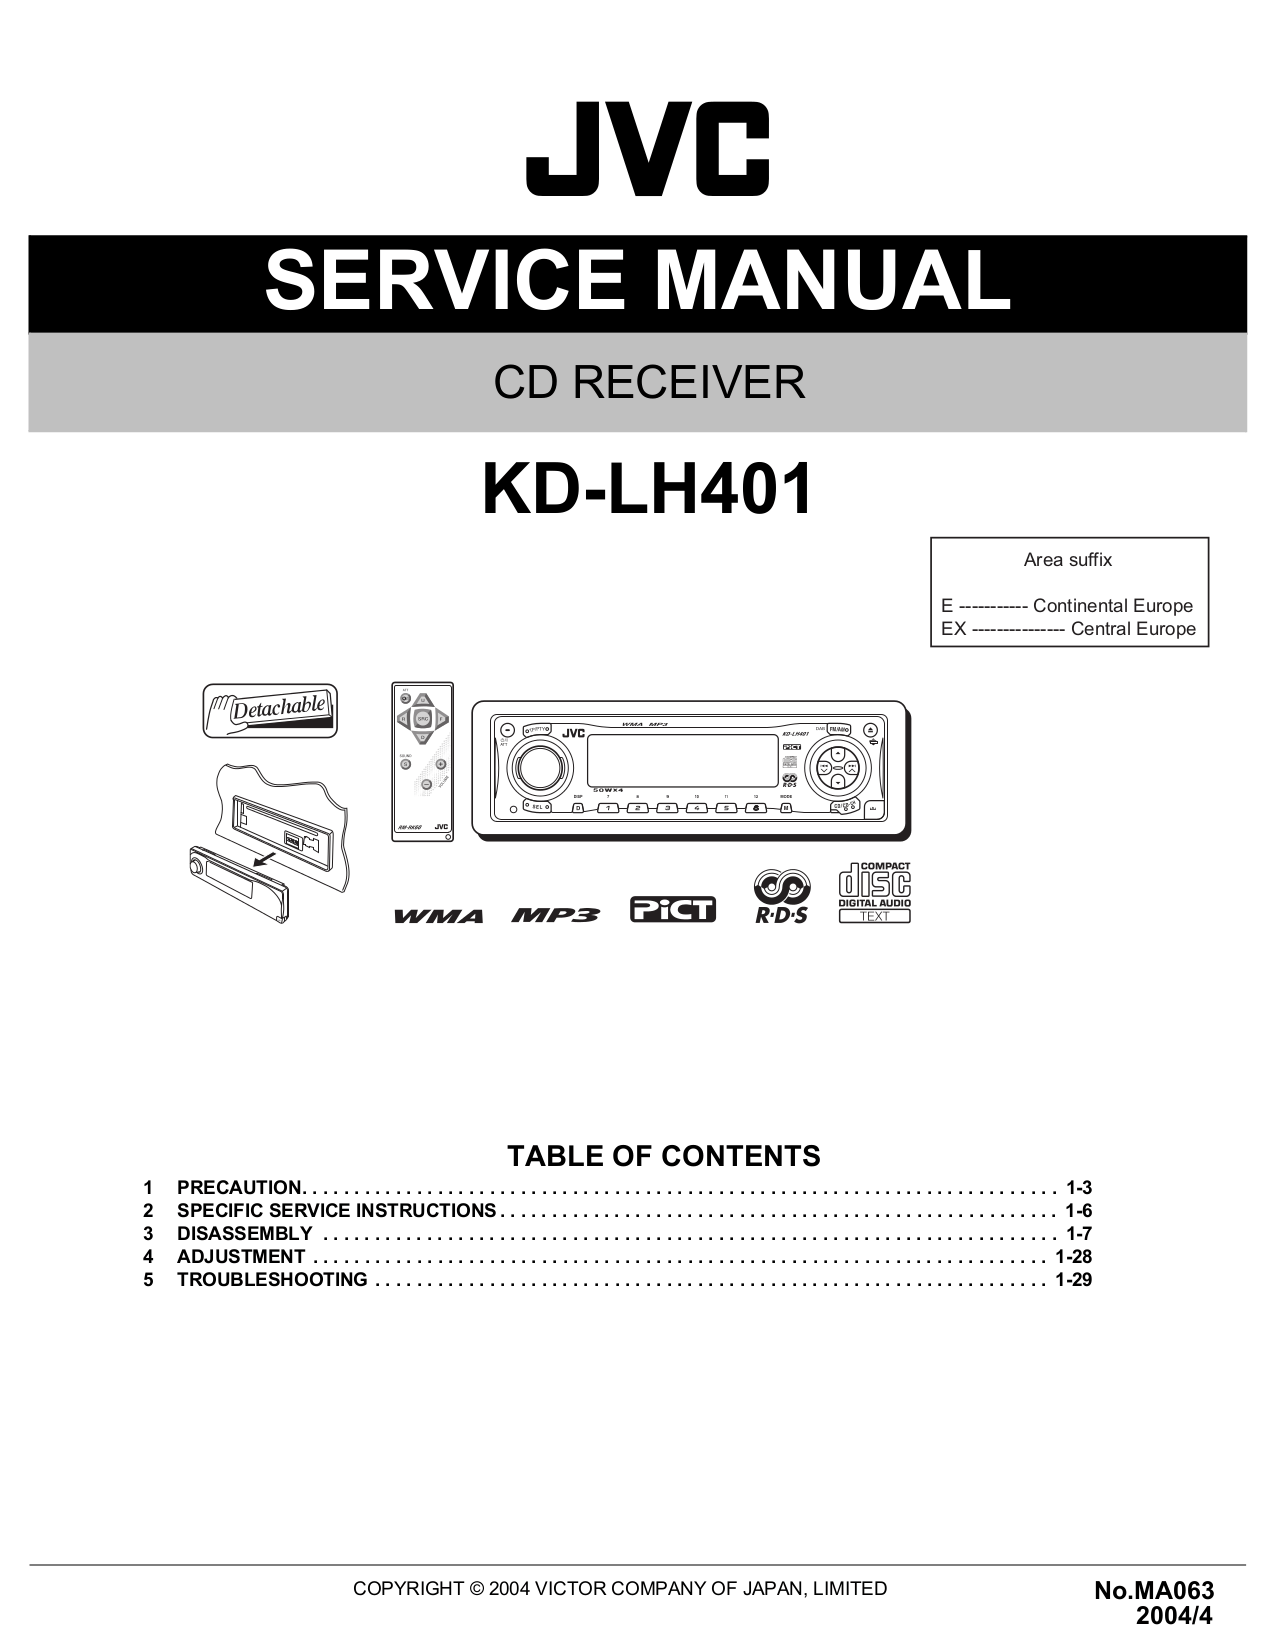 jvc car stereo wiring diagram face muscles harness for kd hdr50